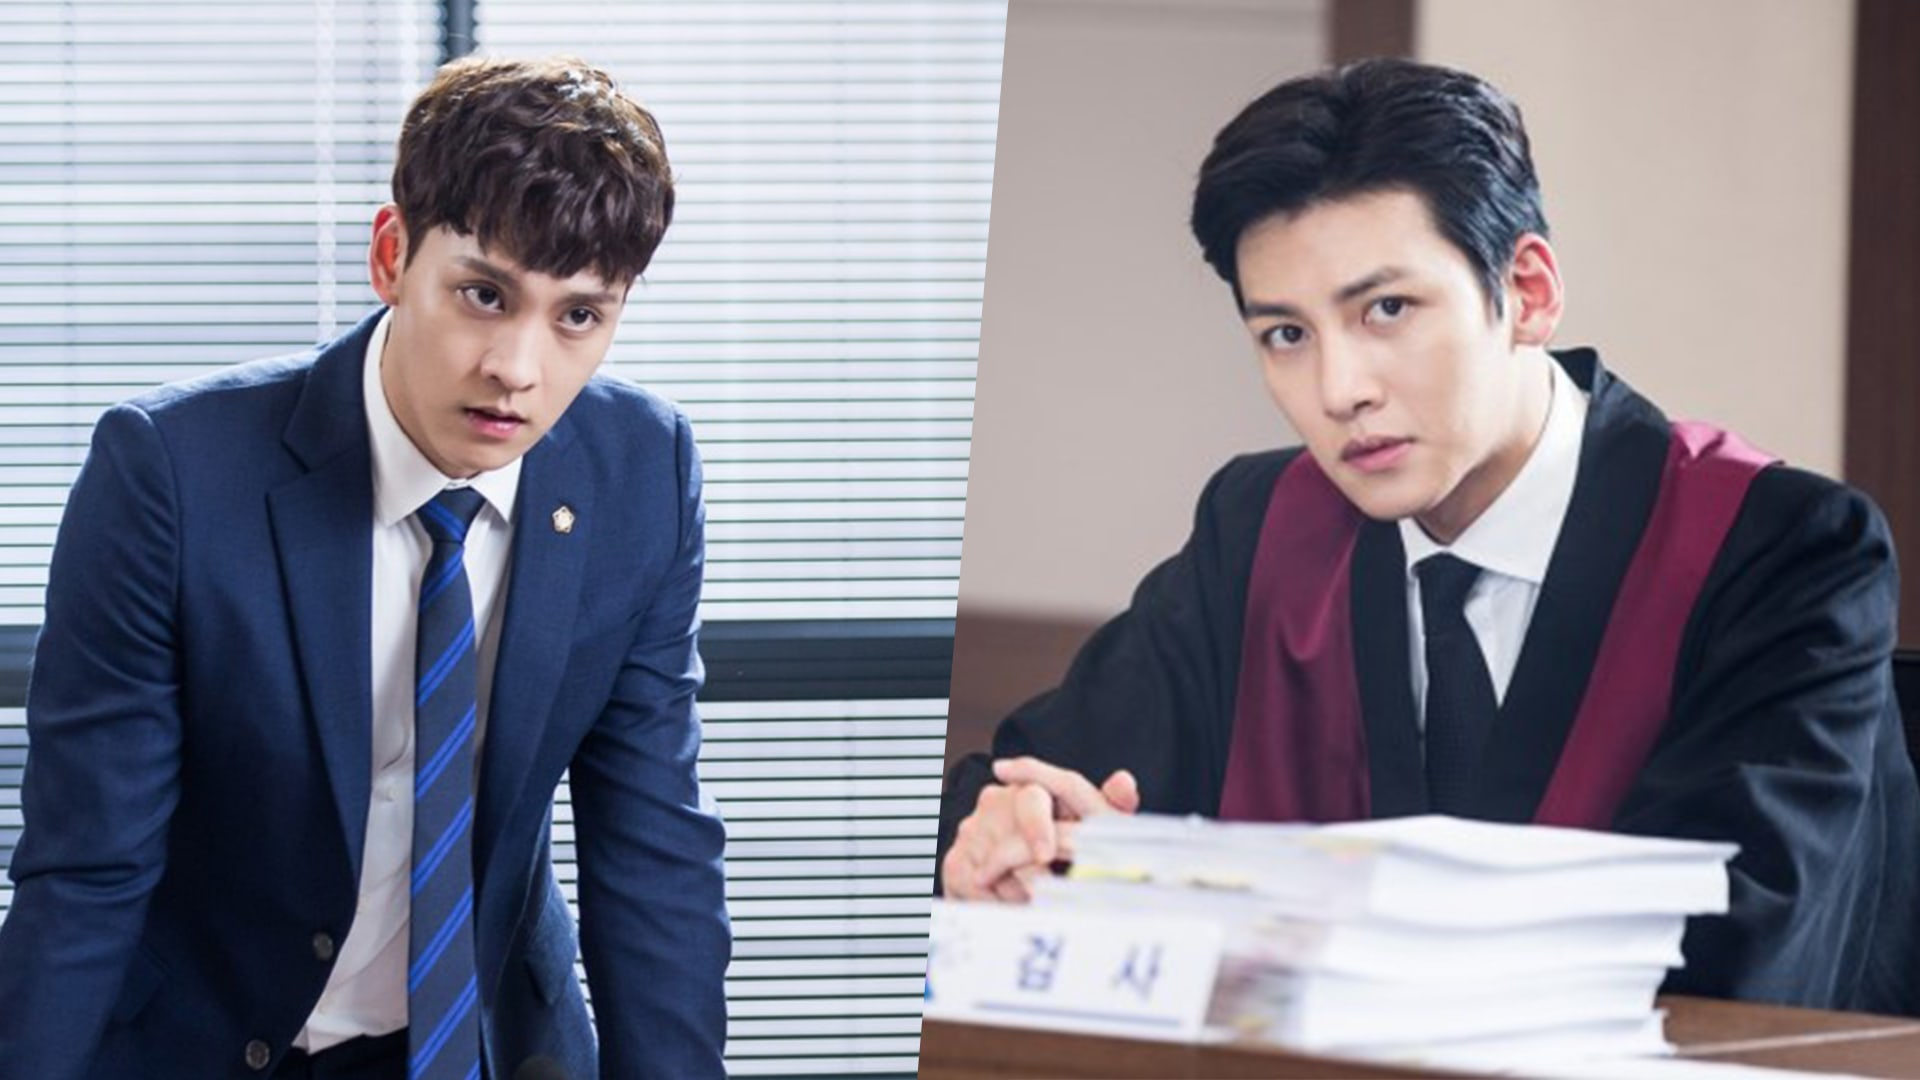 """Ji Chang Wook And Choi Tae Joon Face Off In Court In New """"Suspicious Partner"""" Stills"""